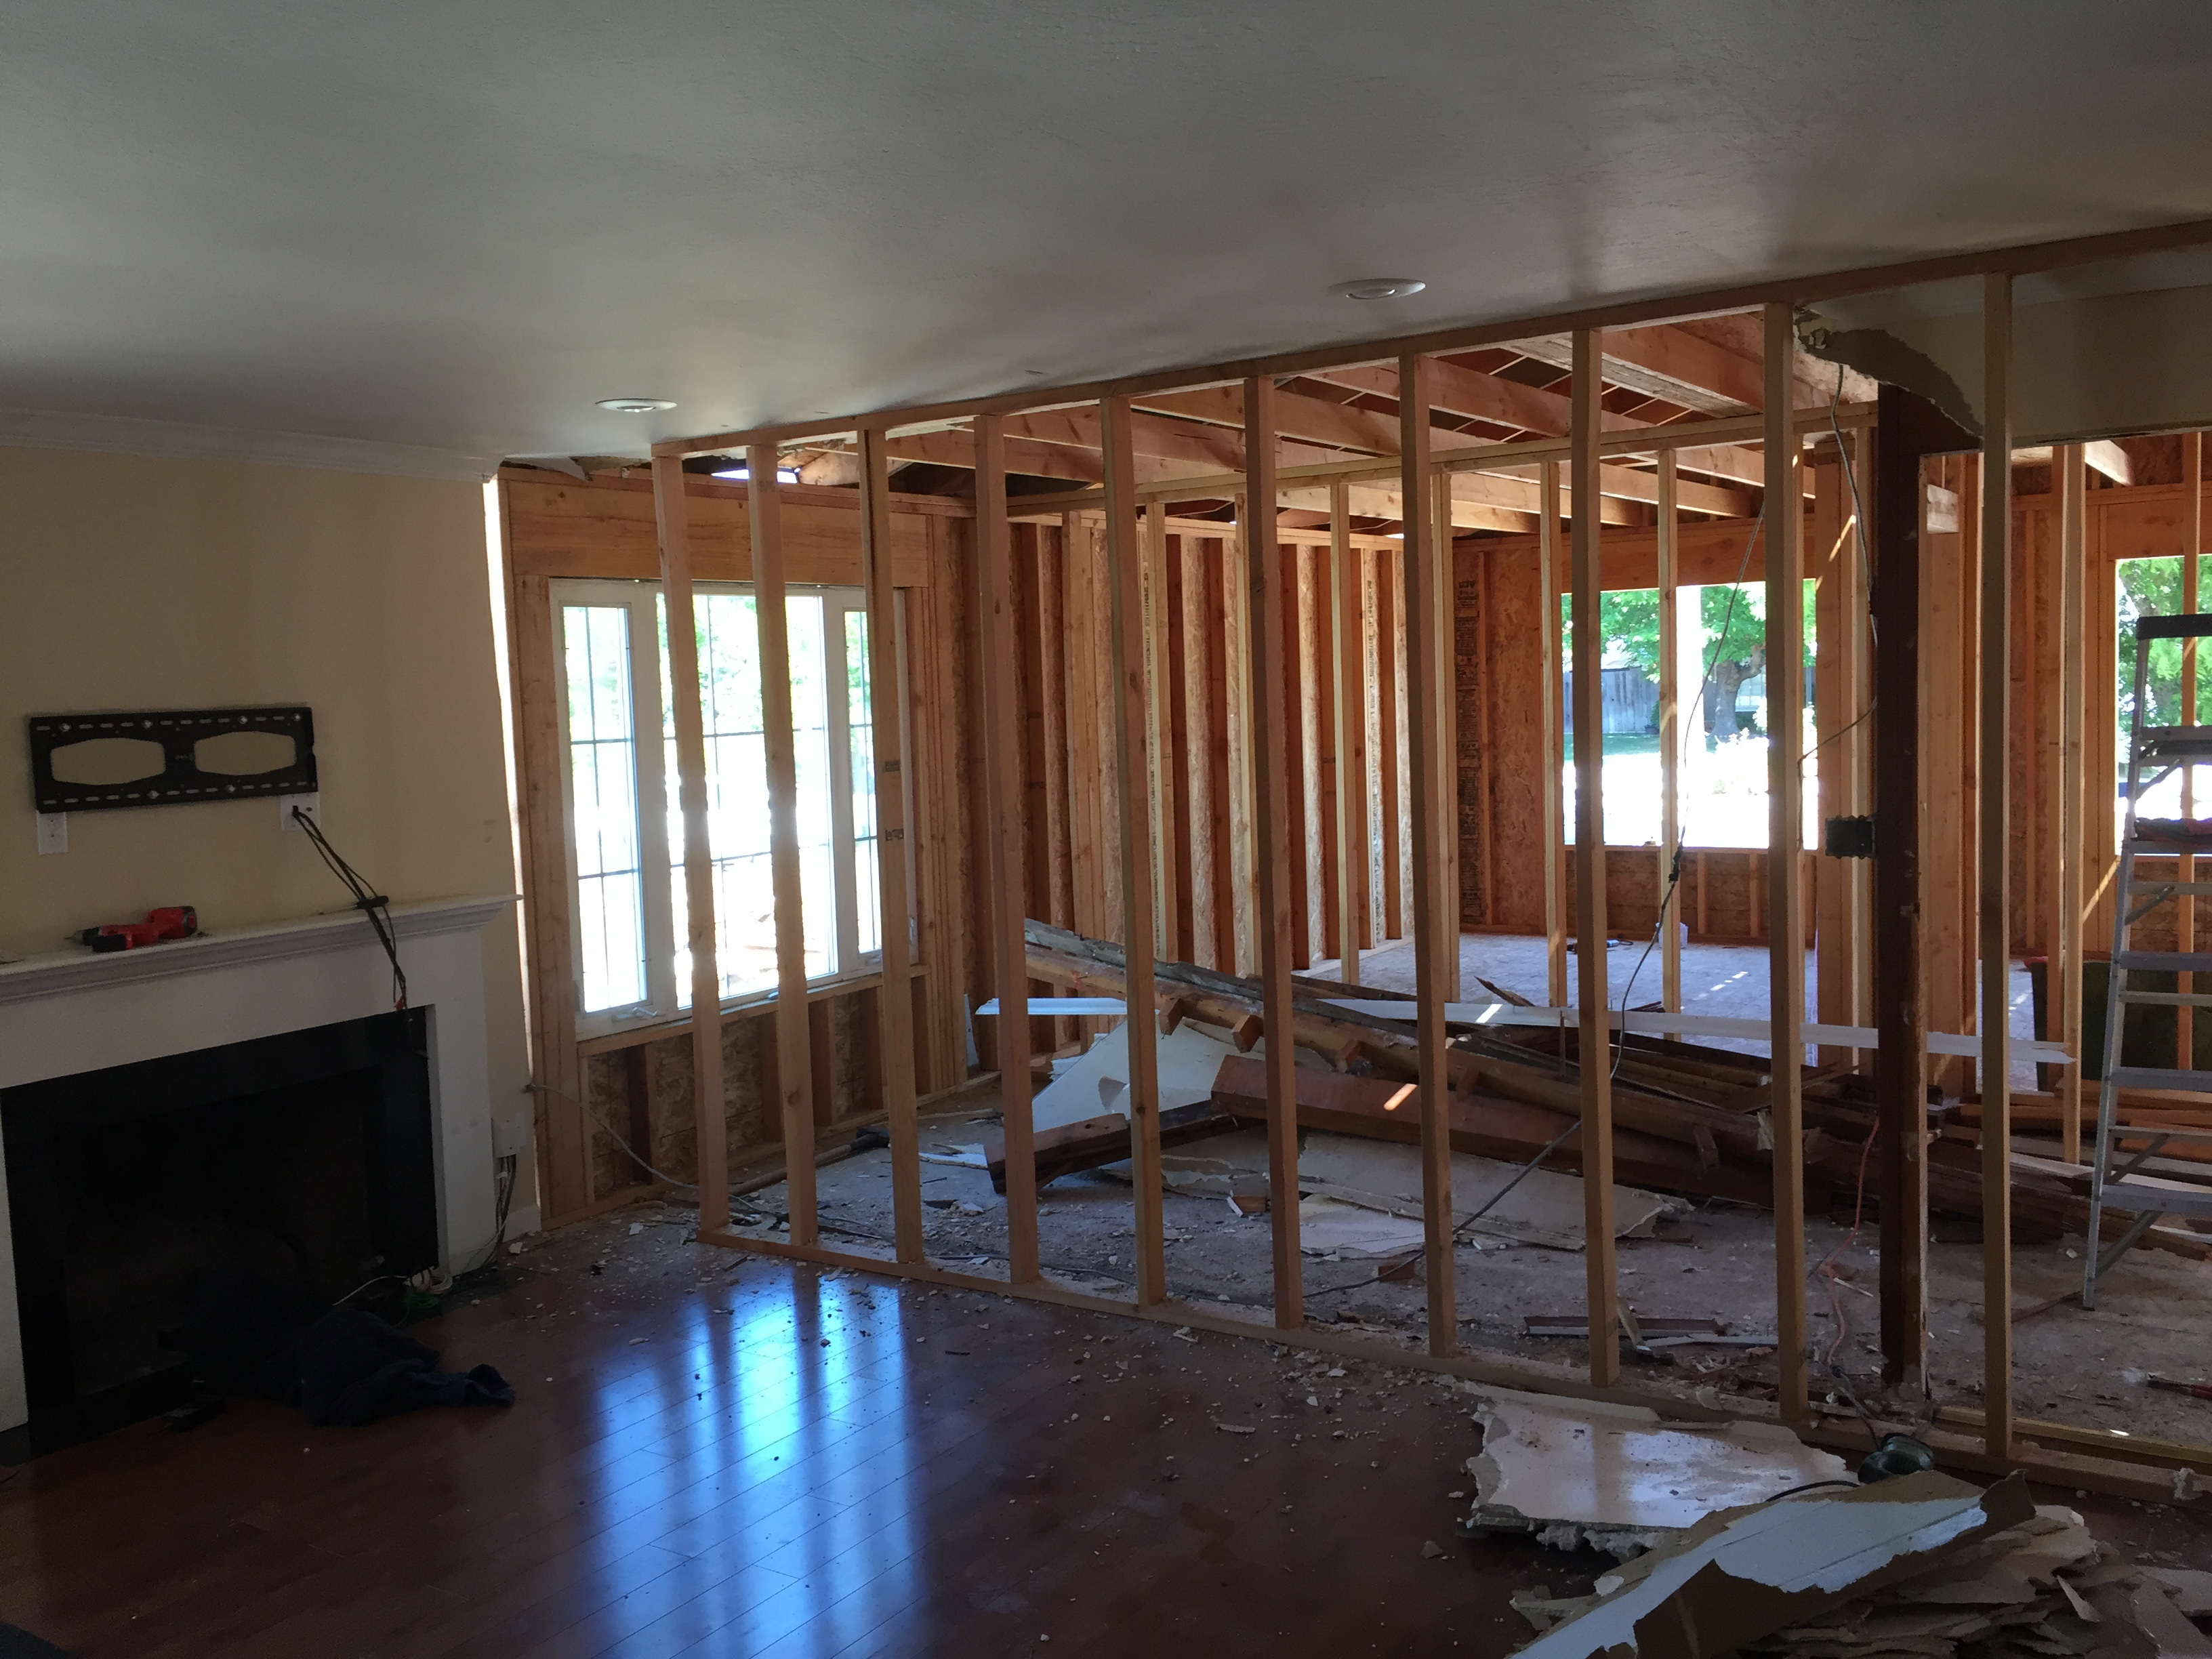 Diy Remodeling How To Add 700sqf Almost Alone Redo Wiring Old House Step 17 All The Plumbing